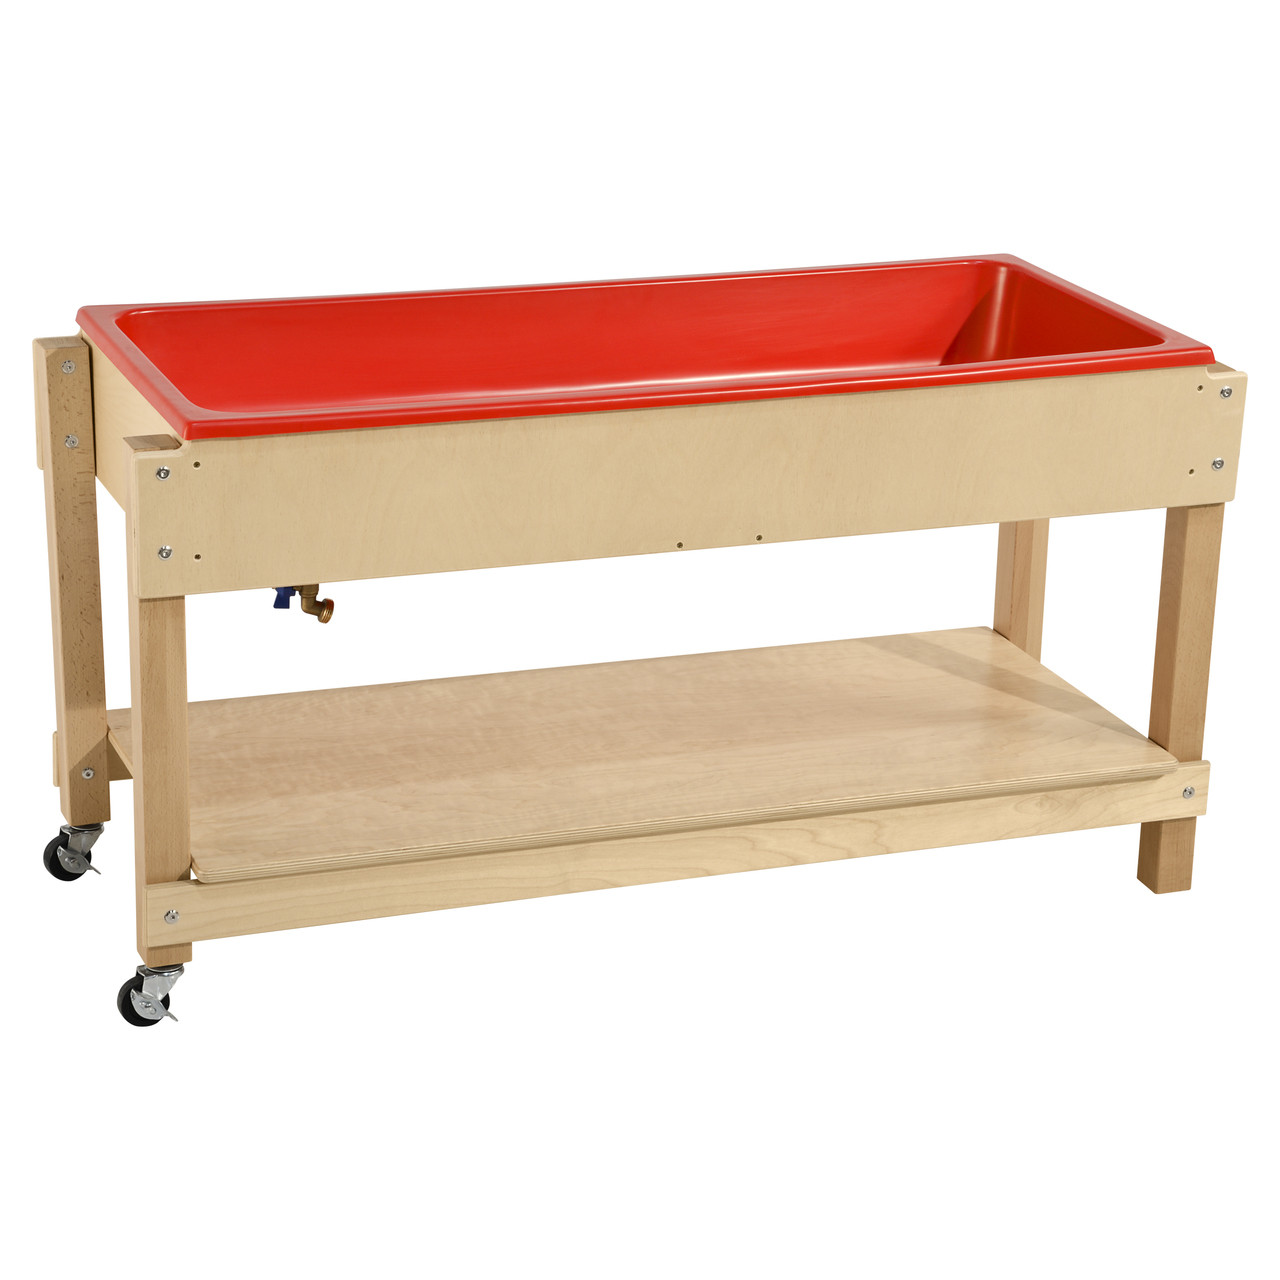 Wood Designs Sand And Water Table With Lid Shelf 11810 Wdd